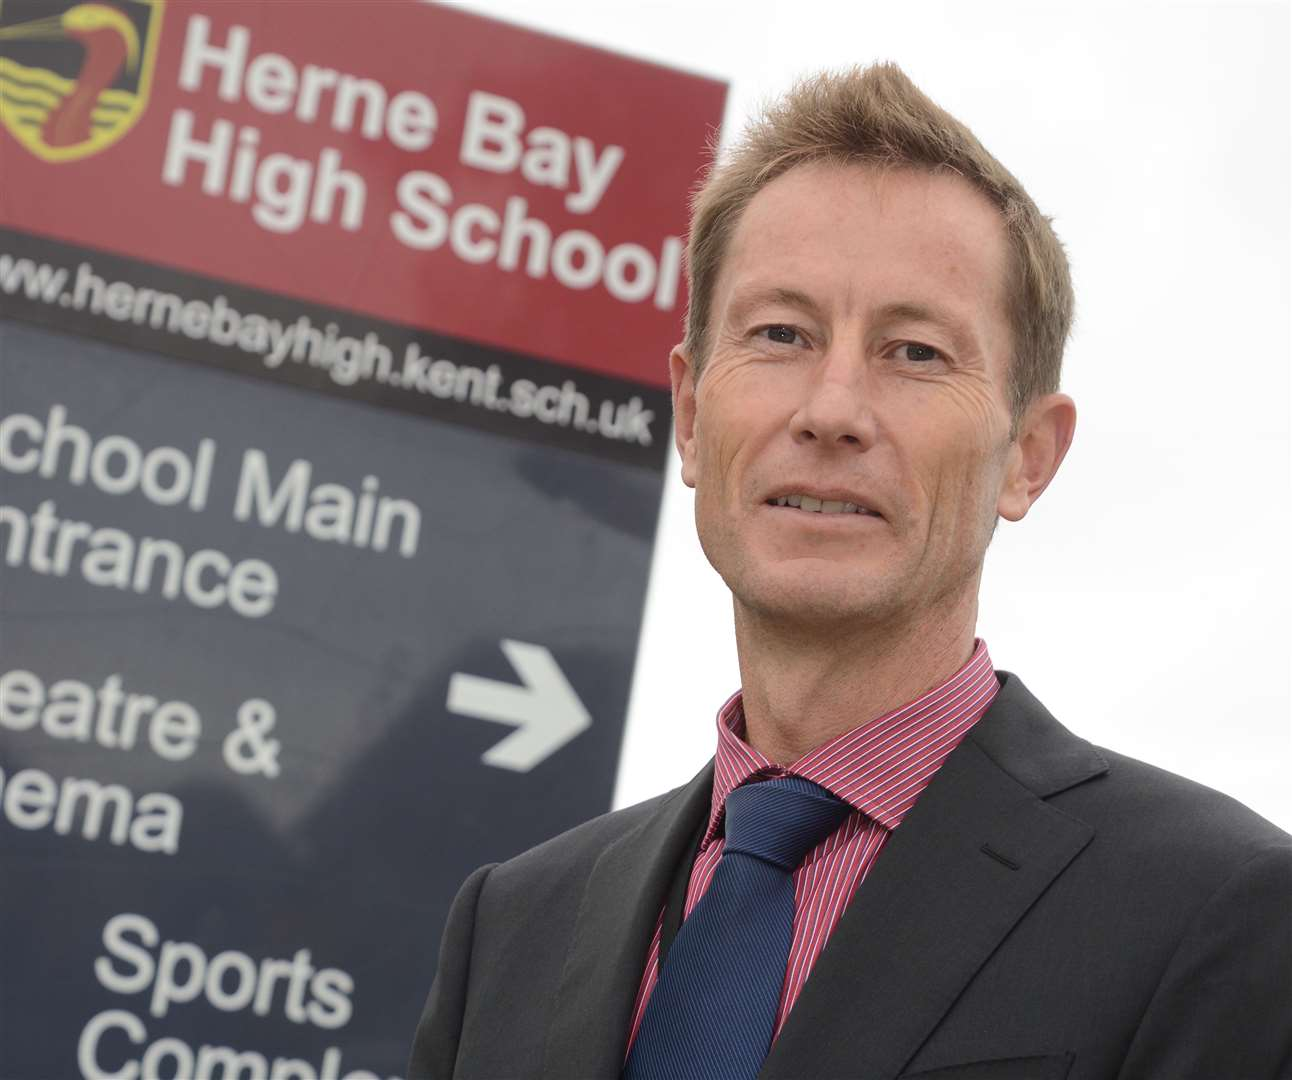 Herne Bay High principal Jon Boyes says as many as 85 pupils are currently missing classes